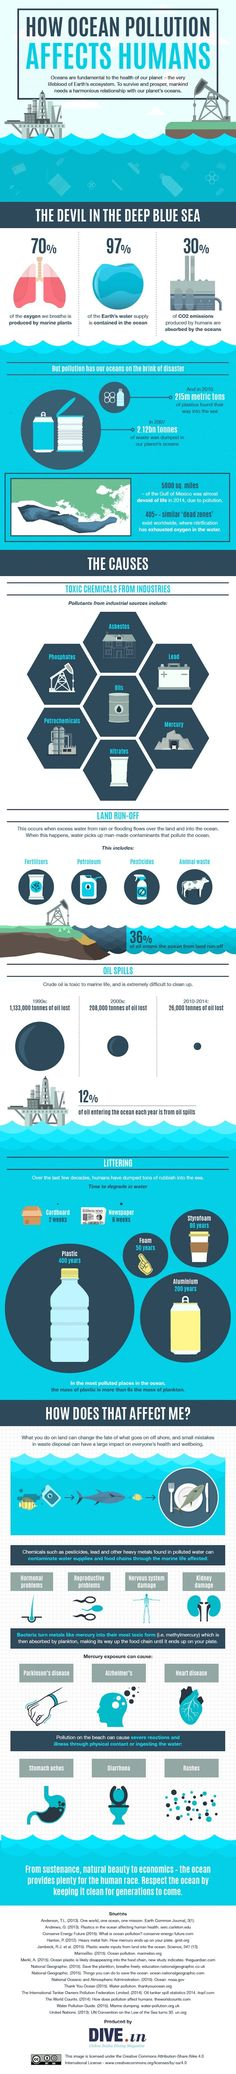 Check out this infographic from DIVE.in, an online scuba diving magazine, to learn how ocean pollution hurts humans too and not just marine life. Environmental Education, Environmental Issues, Ocean Pollution, Plastic Pollution, Pollution Environment, Water Pollution Poster, Save Our Oceans, Marine Conservation, Marine Biology